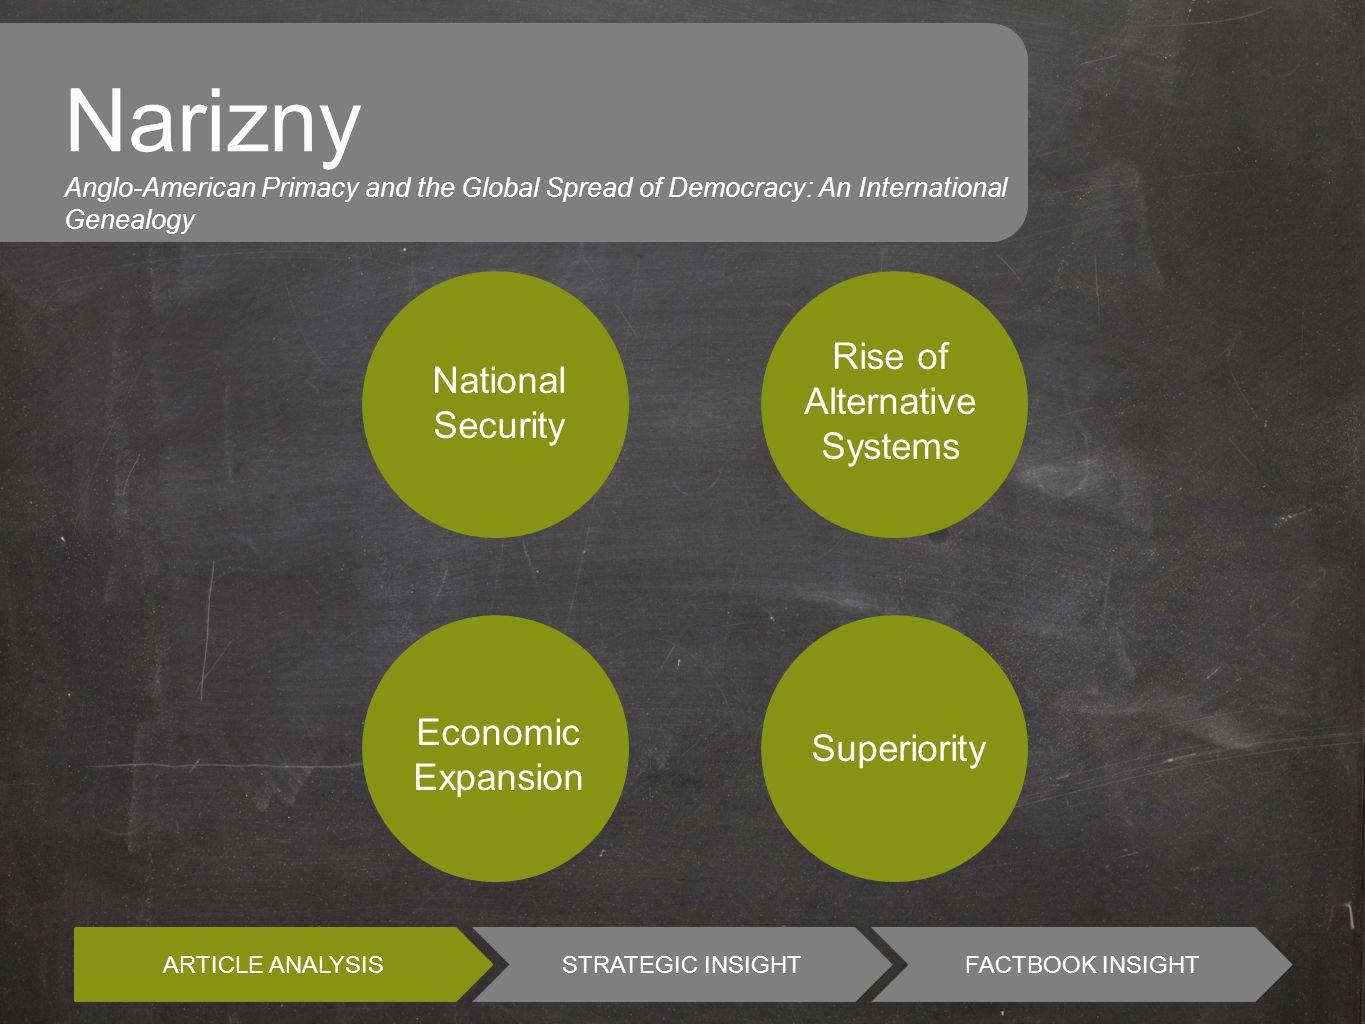 ARTICLE ANALYSIS STRATEGIC INSIGHTFACTBOOK INSIGHT Narizny Anglo-American Primacy and the Global Spread of Democracy: An International Genealogy National Security Rise of Alternative Systems Economic Expansion Superiority